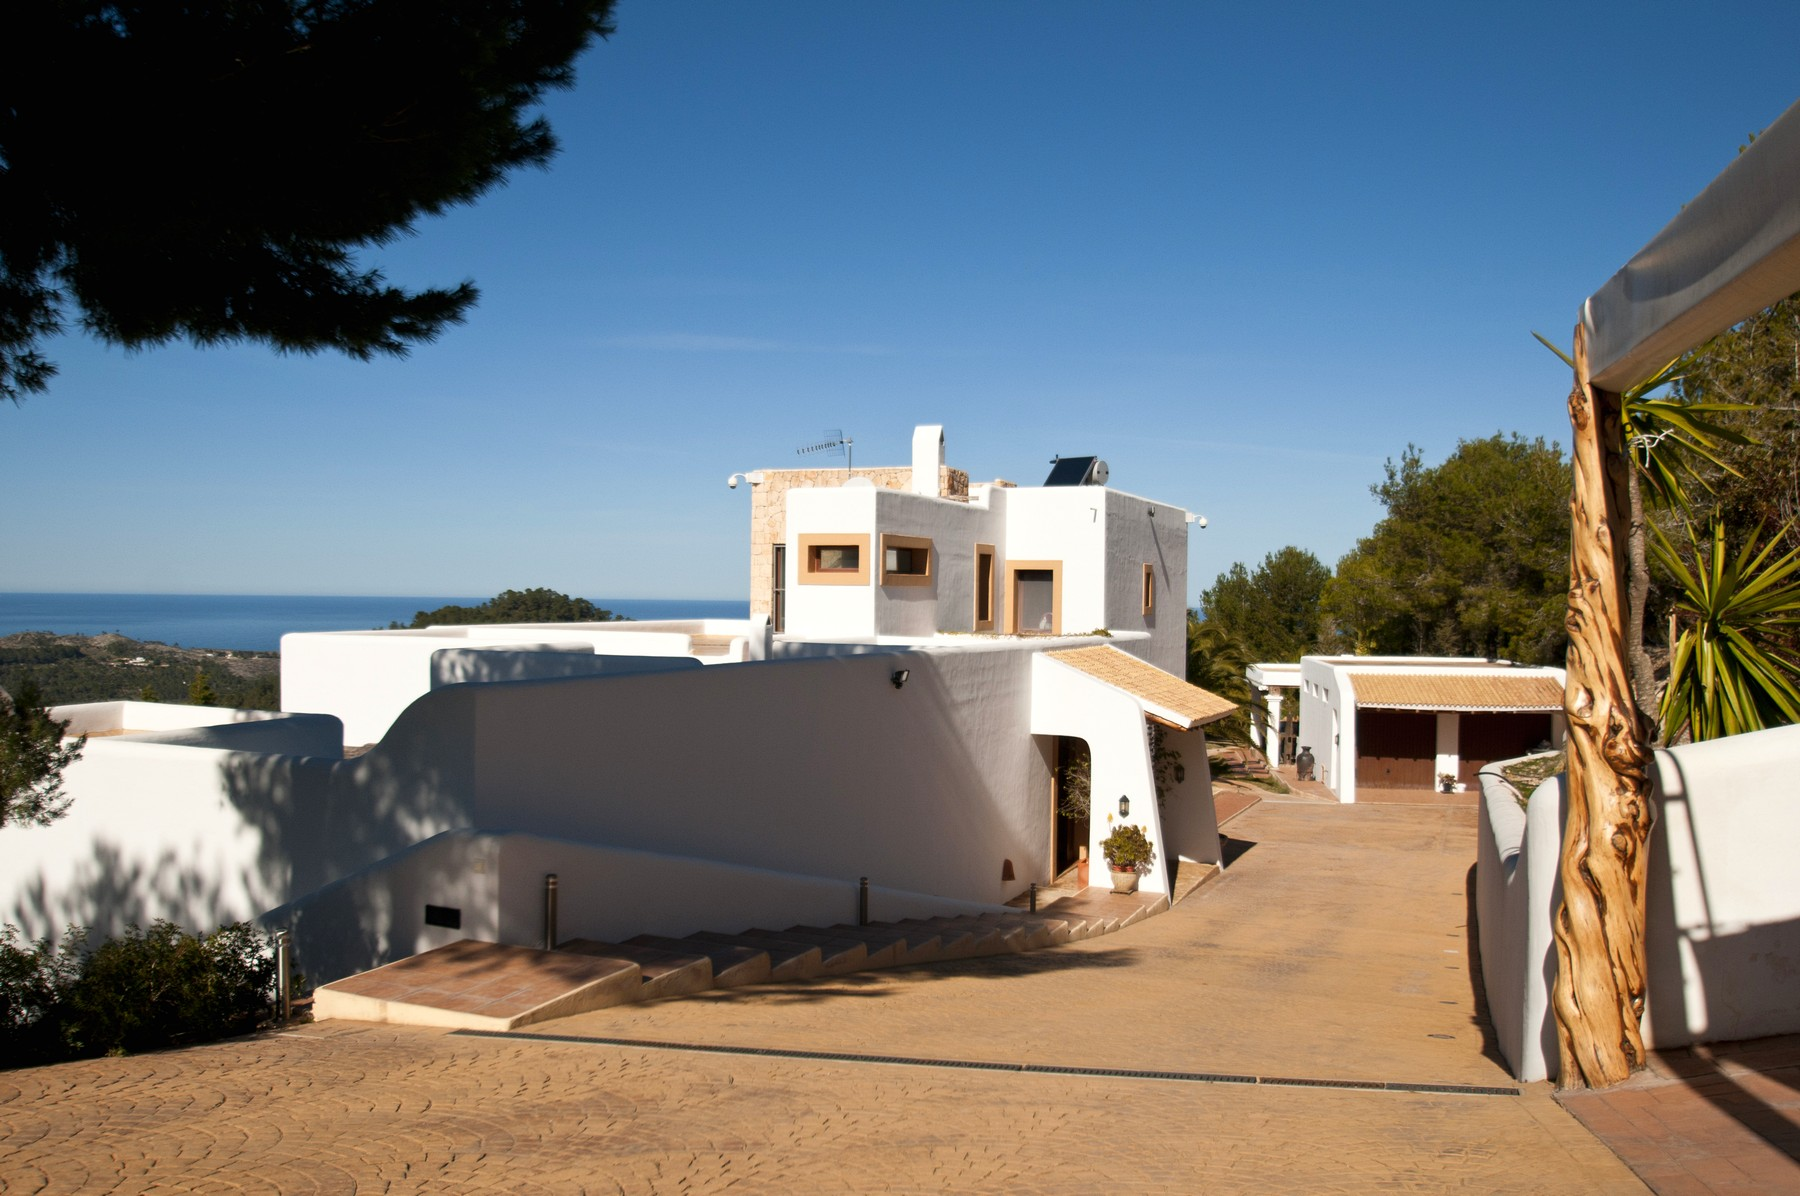 Single Family Home for Sale at Villa In The Tranquil North With Sea Views San Juan, Ibiza 07810 Spain